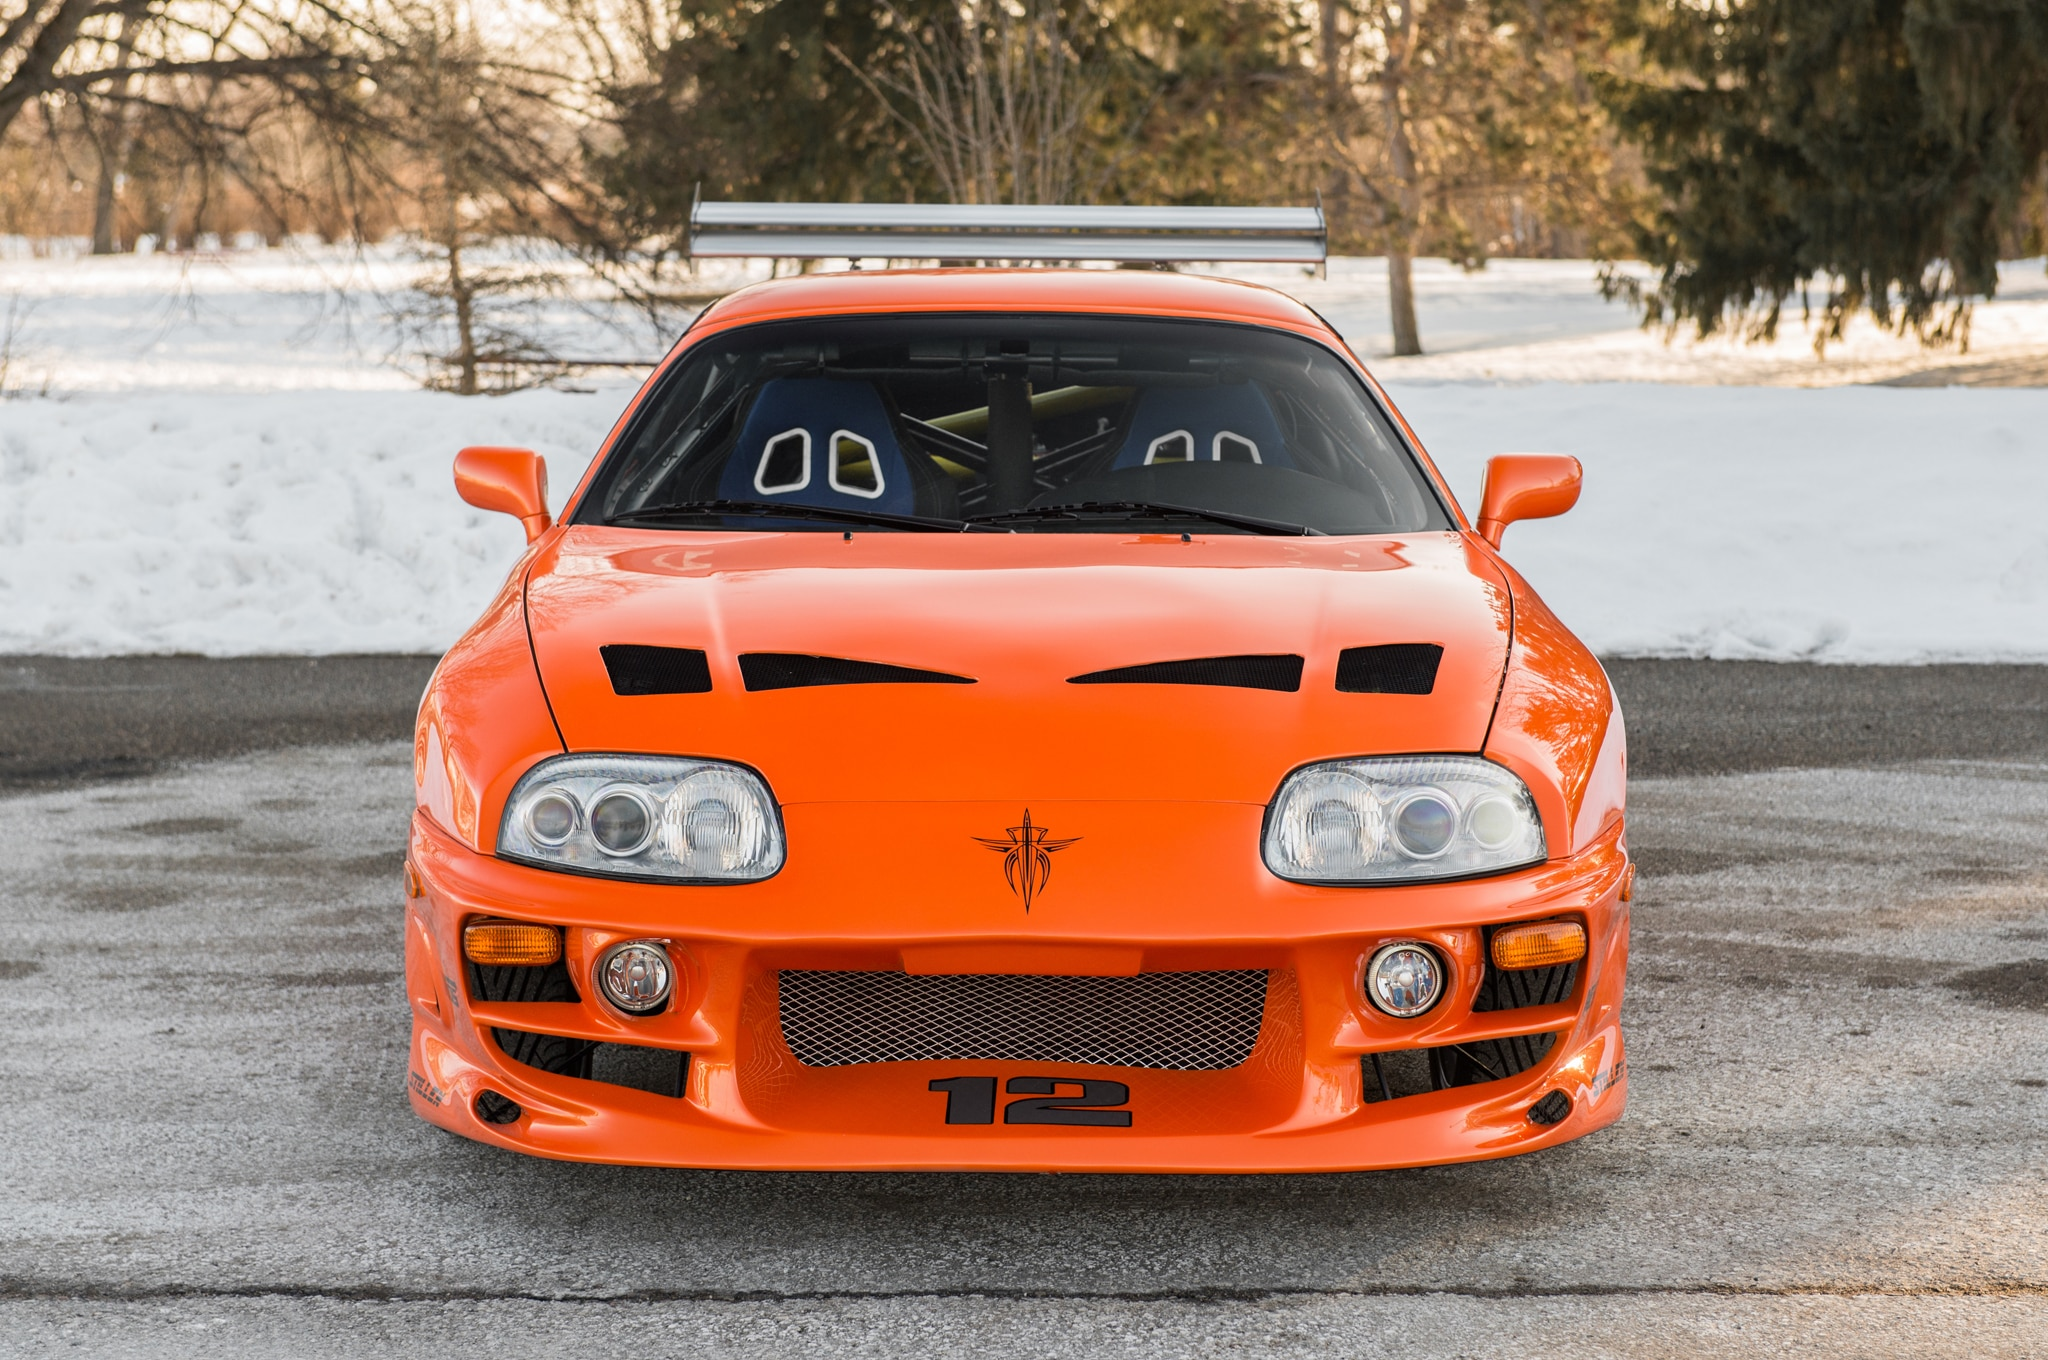 Toyota Supra From The Fast And The Furious 1993 Toyota Supra From